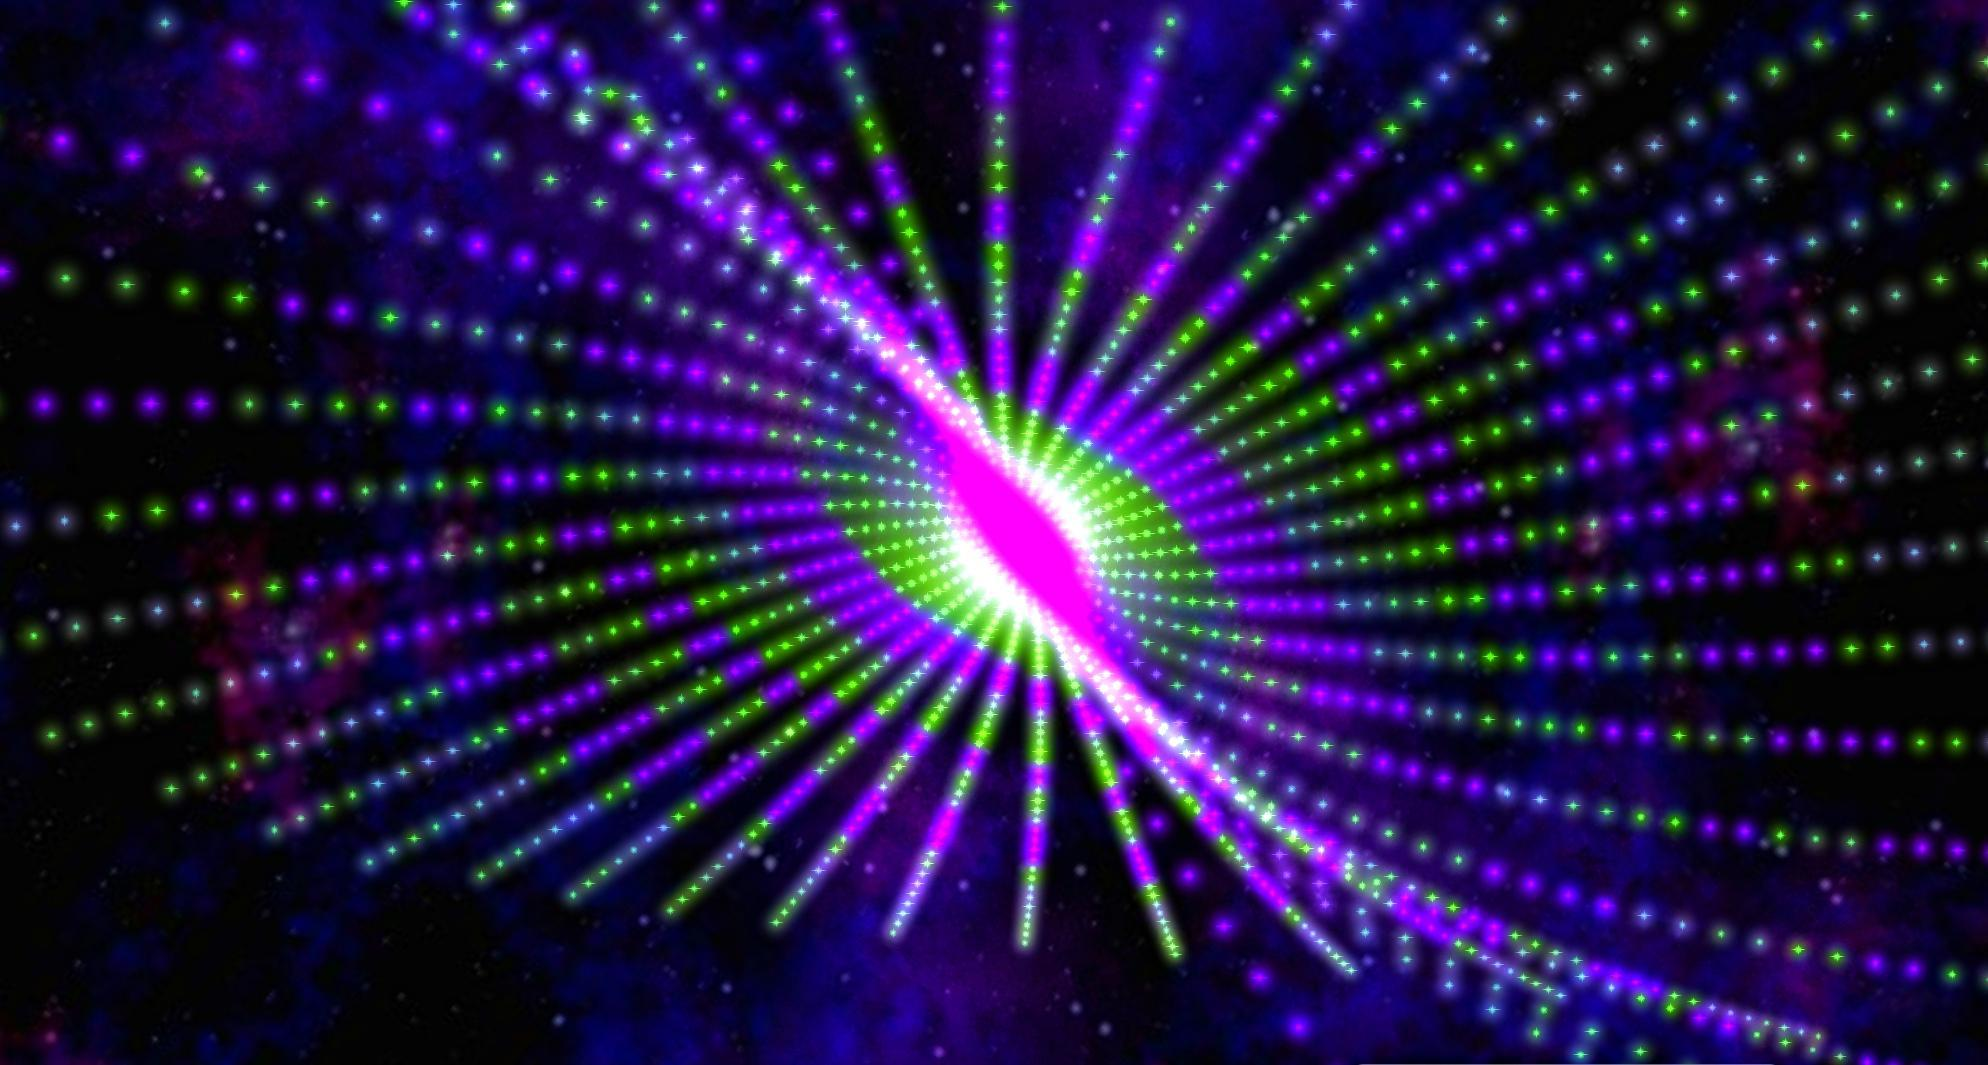 Transcendence Music Visualizer for Android - APK Download